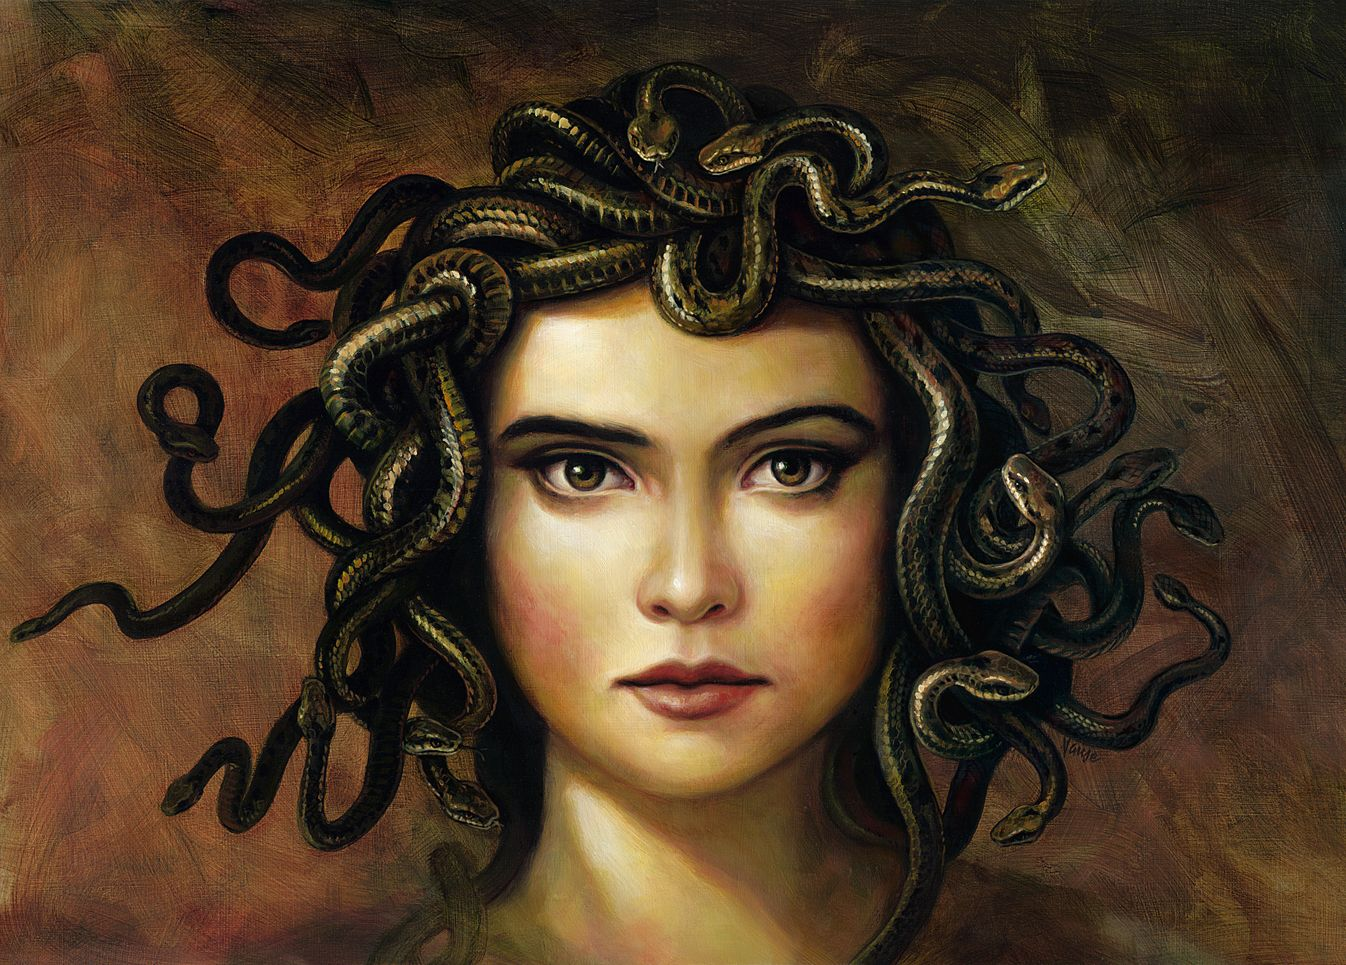 greek mythology and medusa Medusa, in greek mythology, was a woman cursed with the hair of asps, golden wings and skin, and whose beauty had the power to transform men into stone statues.